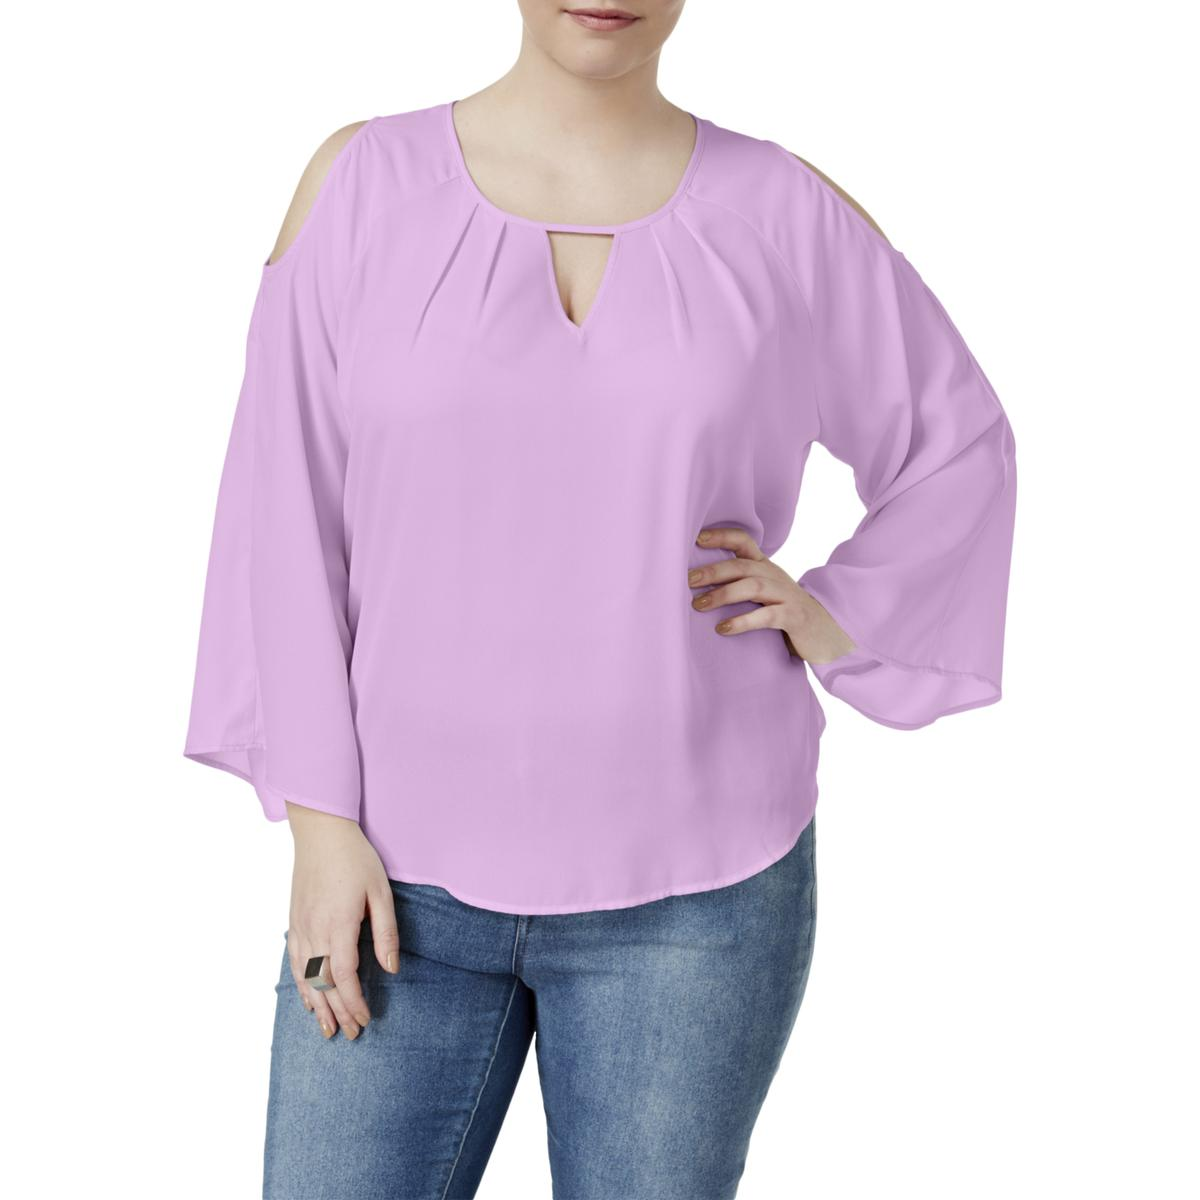 d39b47c6533e1 ... Peekaboo Cold Shoulder Blouse Violet Tulip 3x. About this product.  Picture 1 of 2  Picture 2 of 2